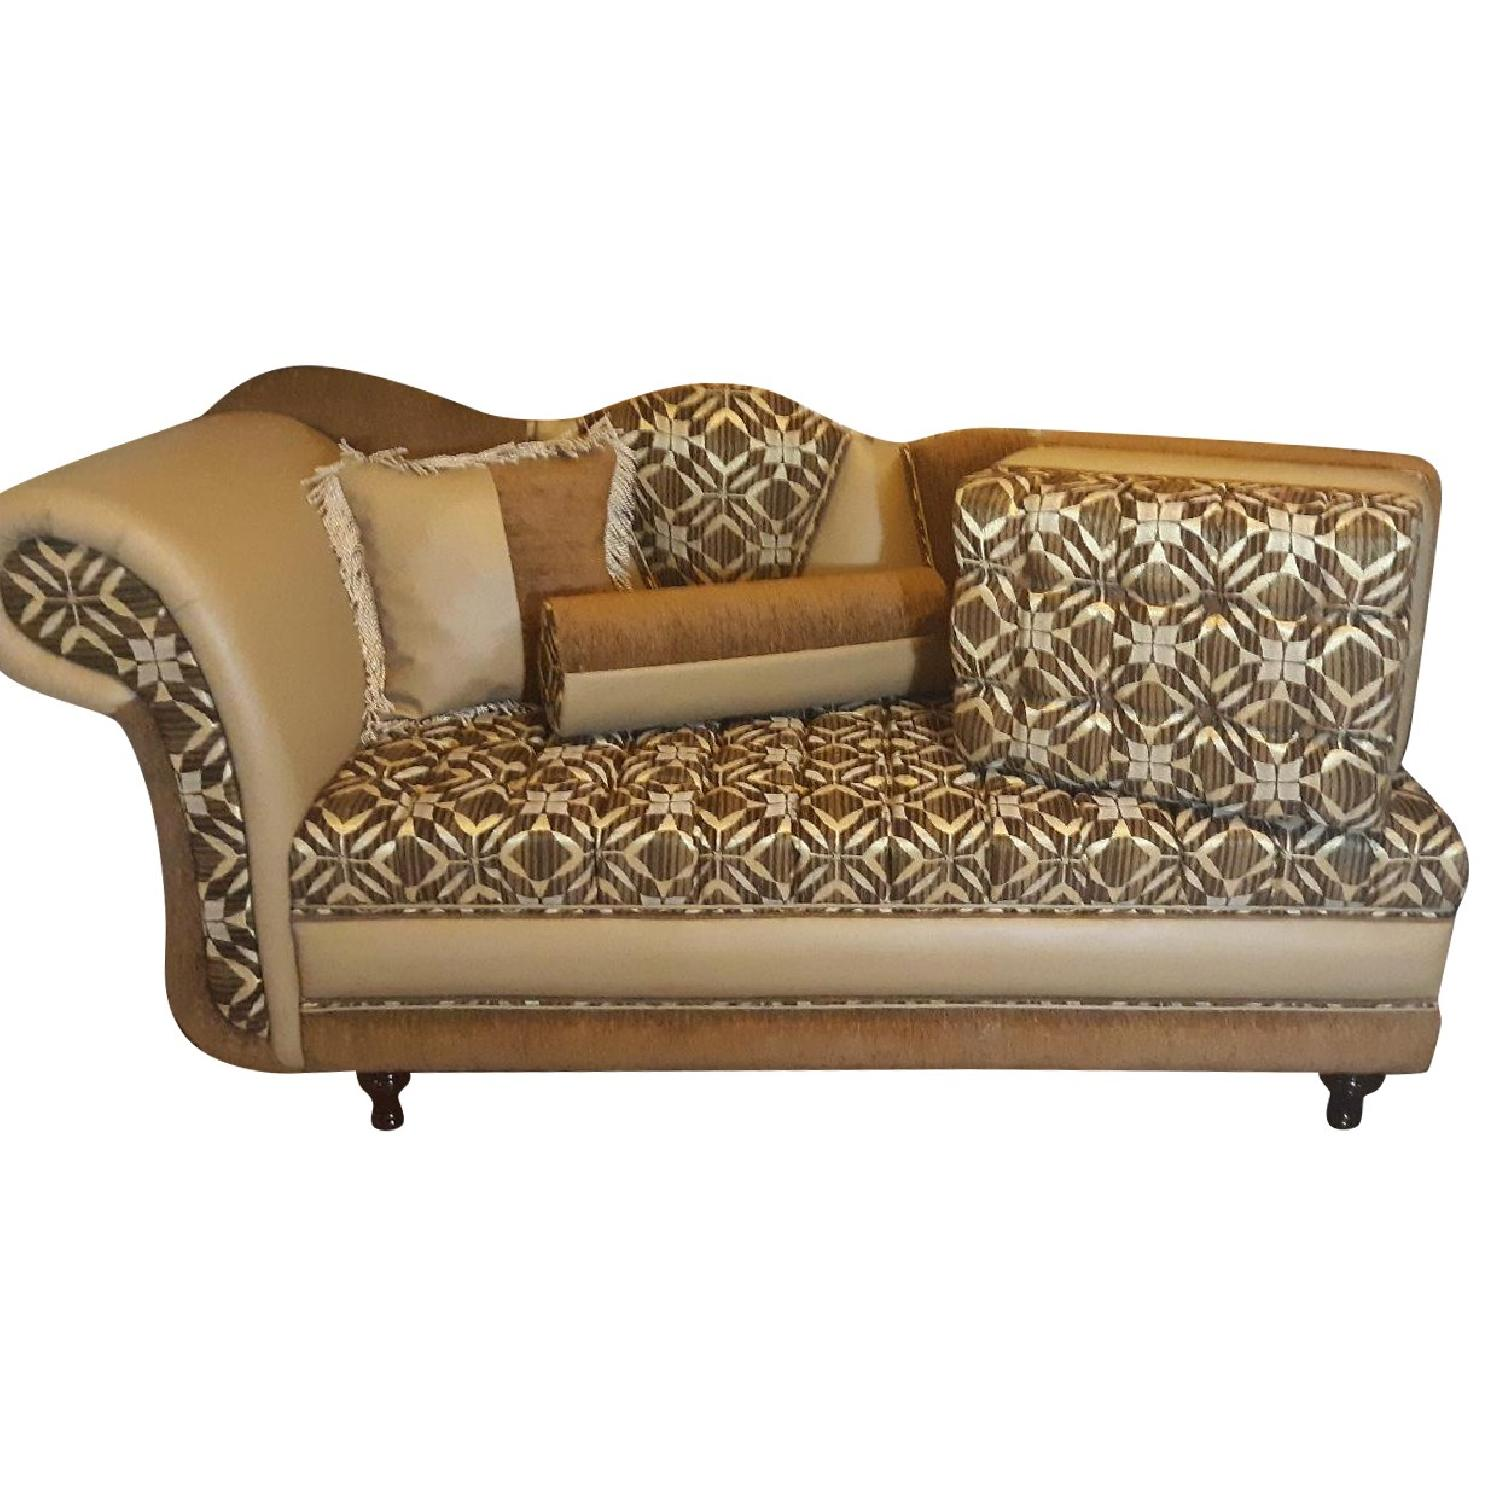 Leather & Fabric Tufted Chaise & Ottoman - image-0